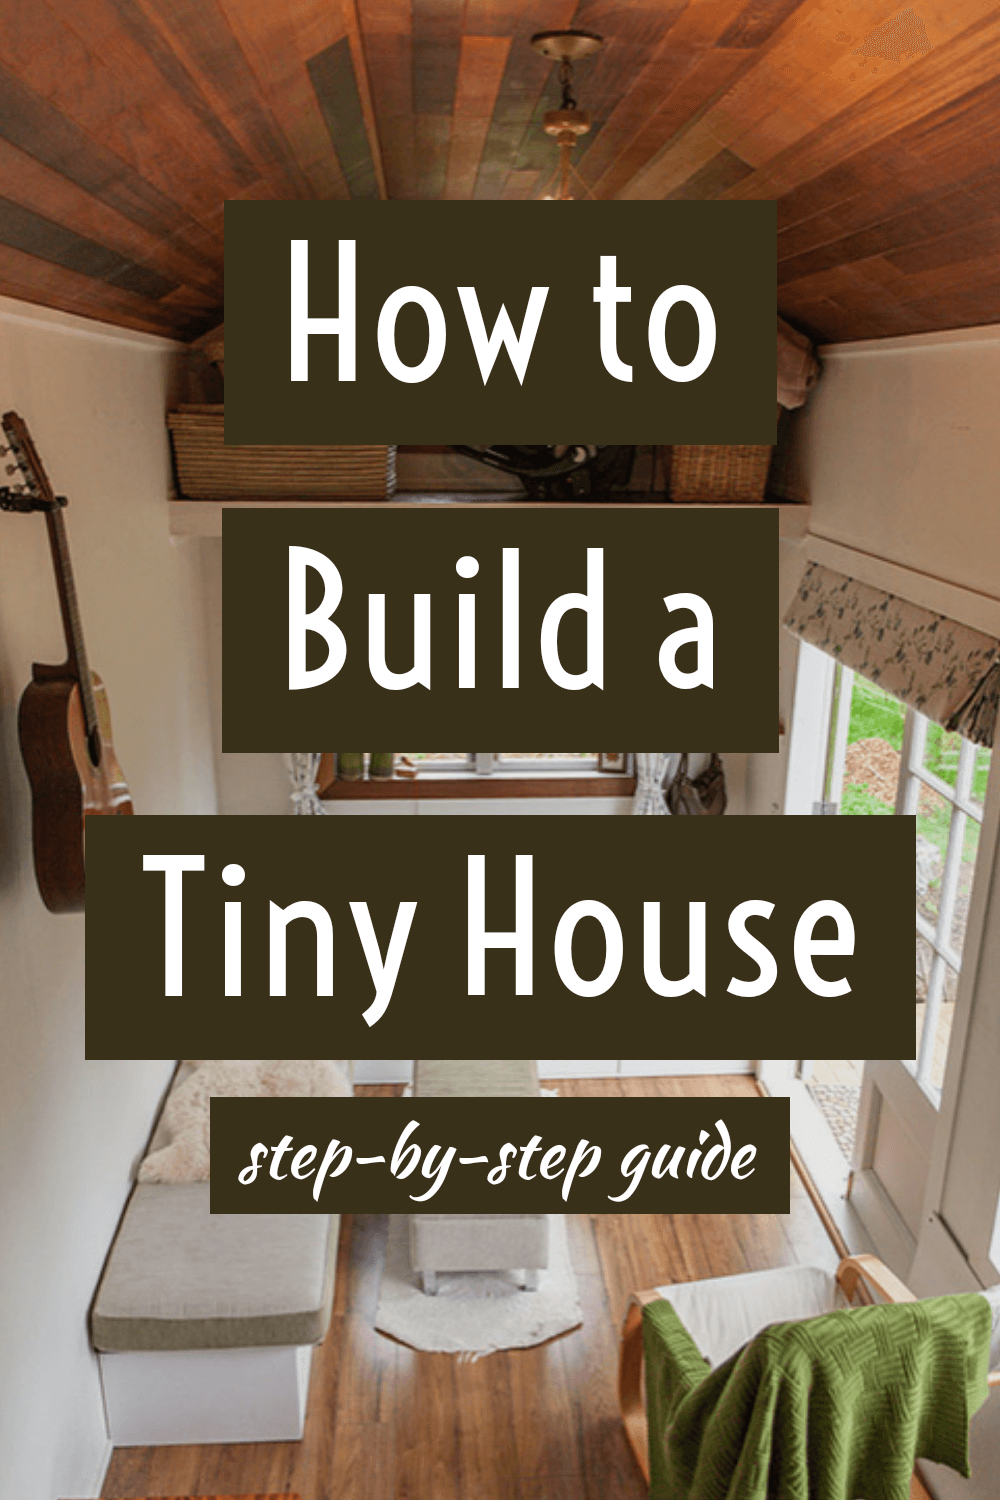 How to build a tiny house - The Ultimate Step-by-step Guide